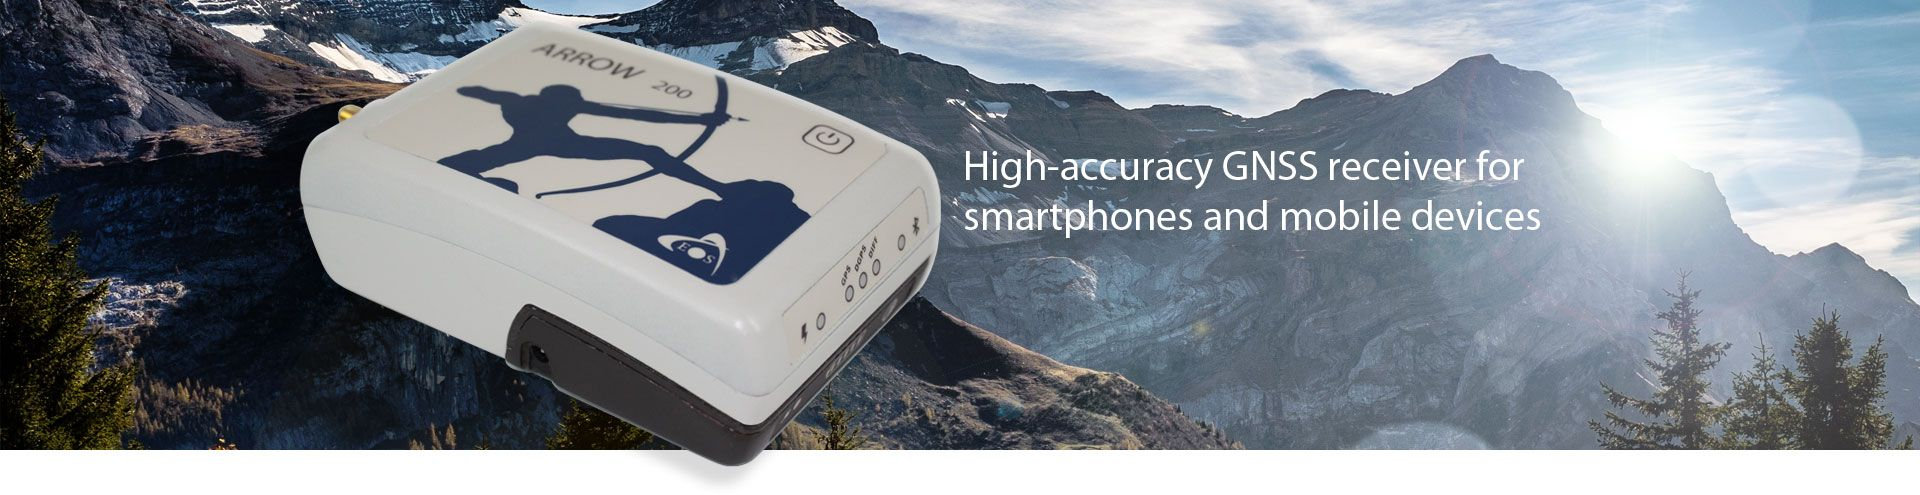 Eos Arrow 200 GNSS Receiver